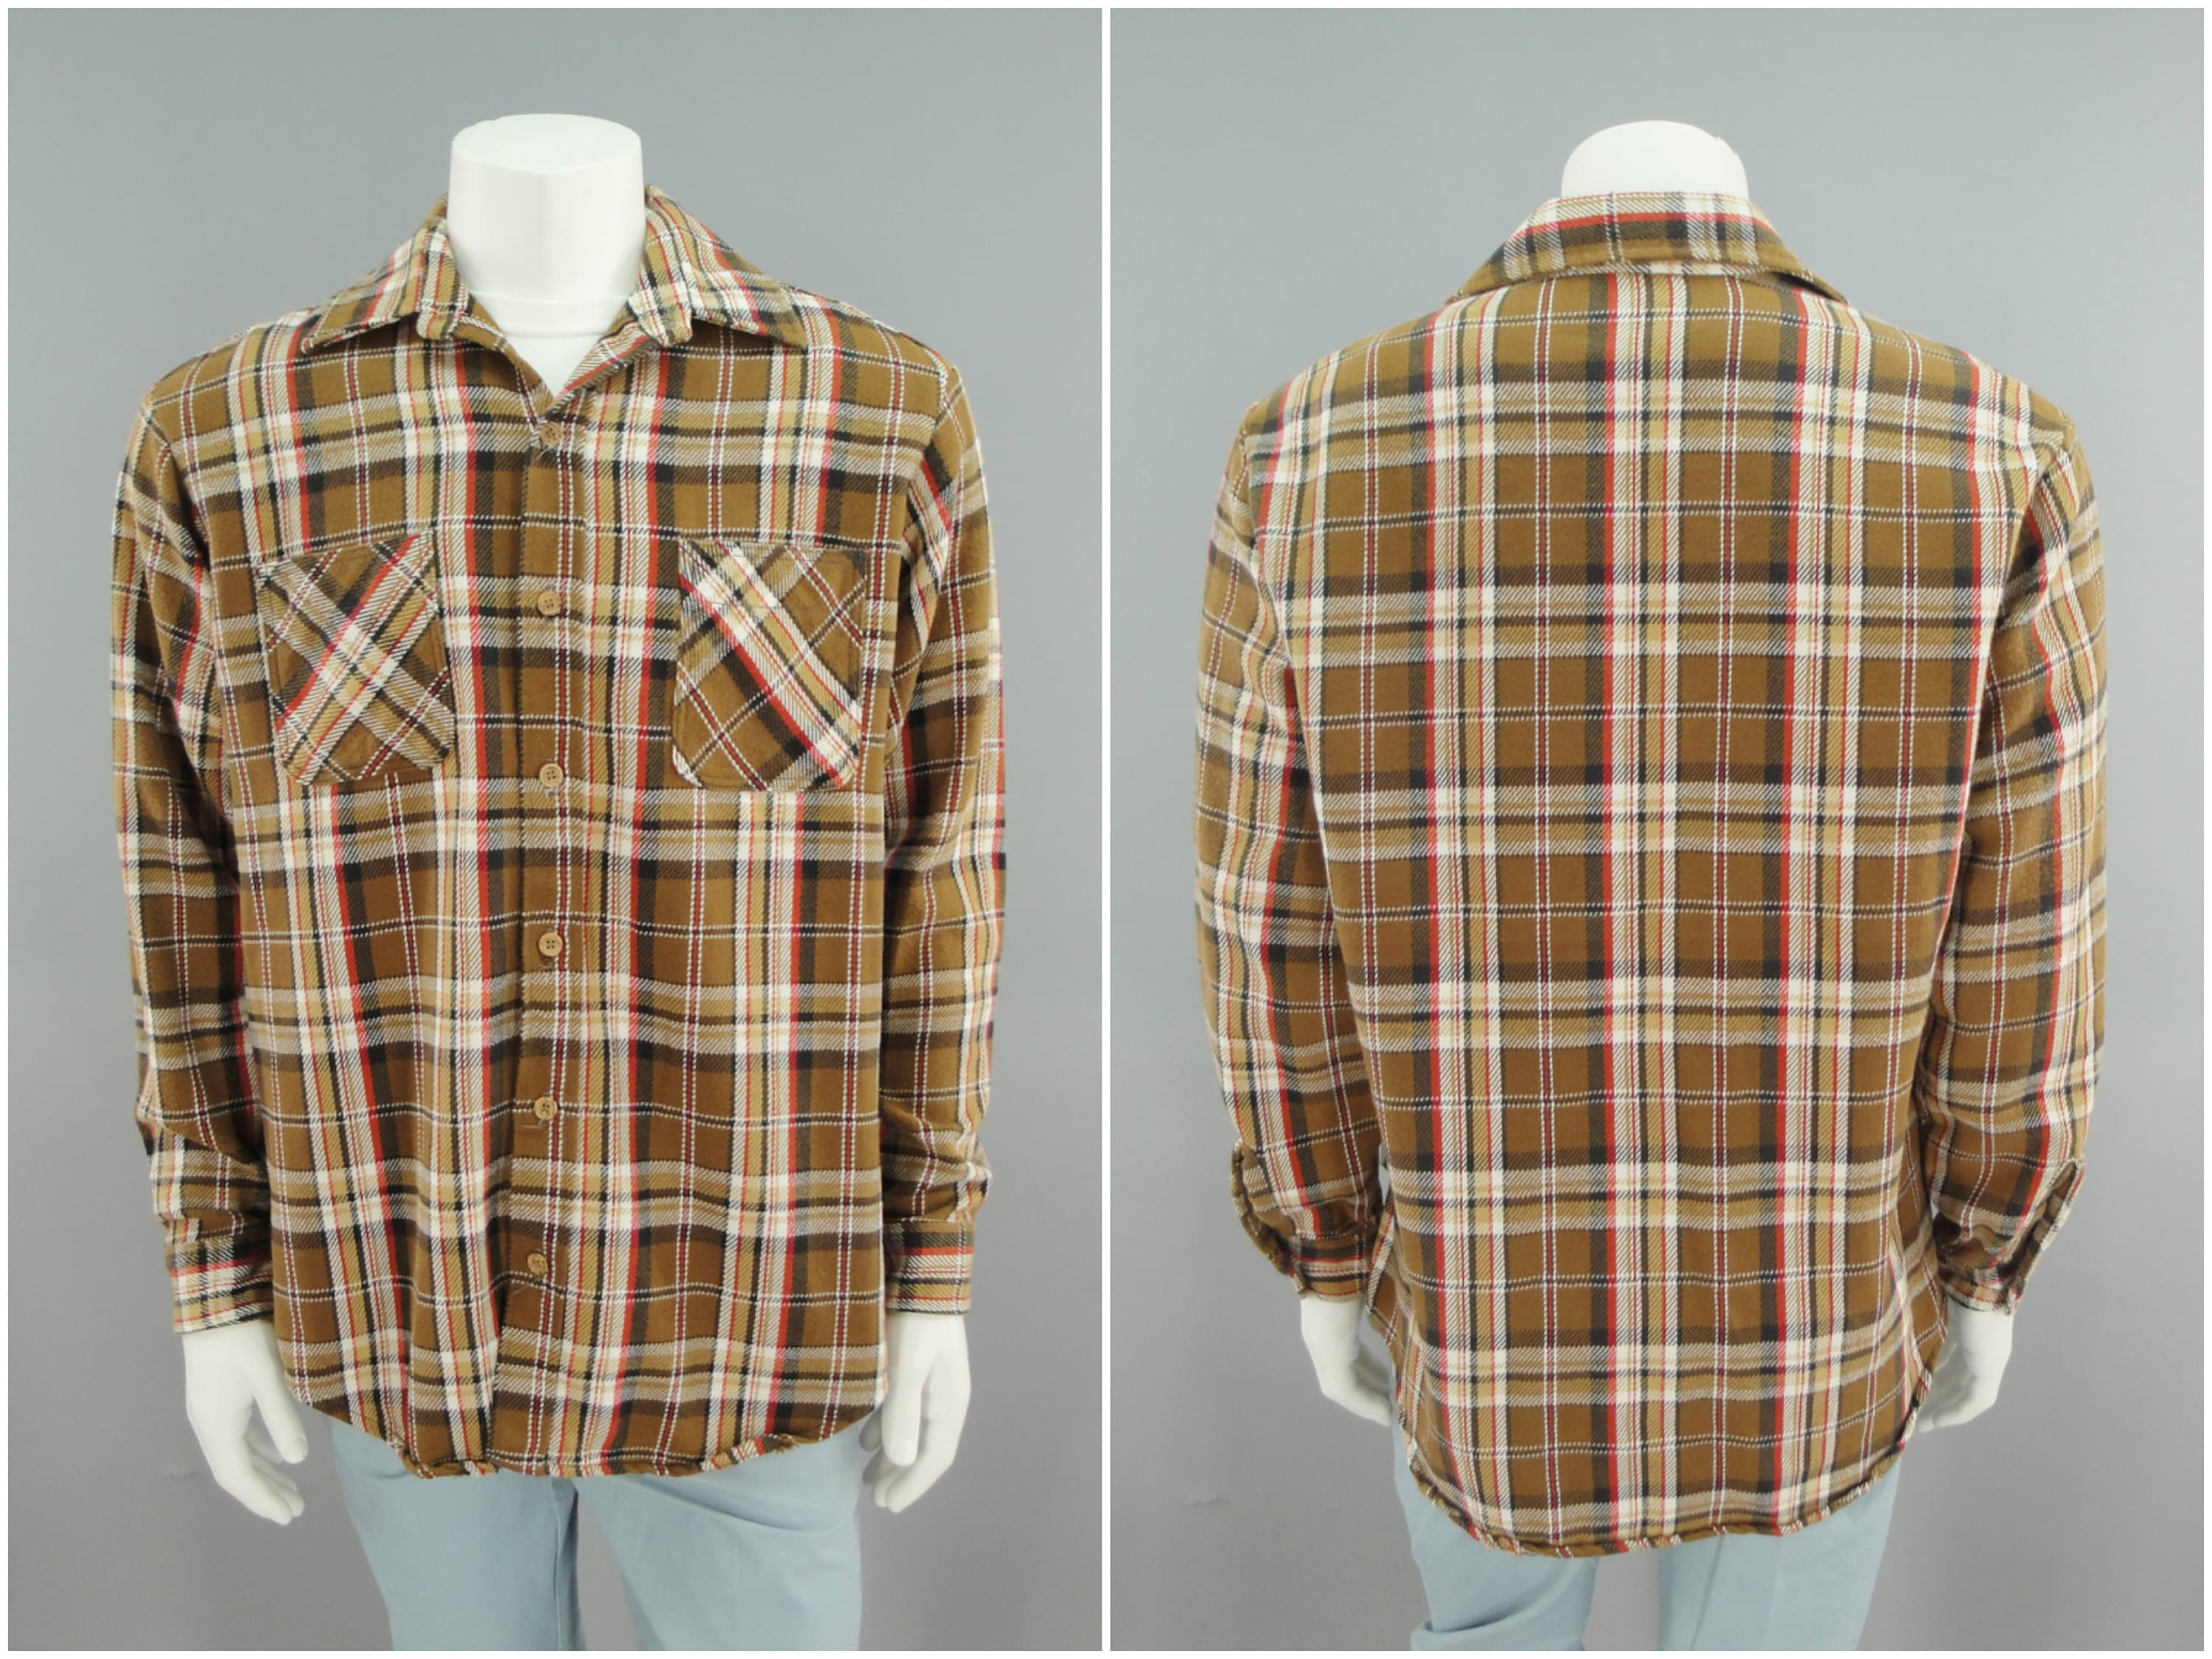 1970s Mens Shirt Styles – Vintage 70s Shirts for Guys Mens Traditional Brown Plaid Flannel Western Shirt By Big Mac For Jc Penney, 1970S 80S Vintage Soft Cotton, Hippie Grunge Style Size Xl 46 $0.00 AT vintagedancer.com